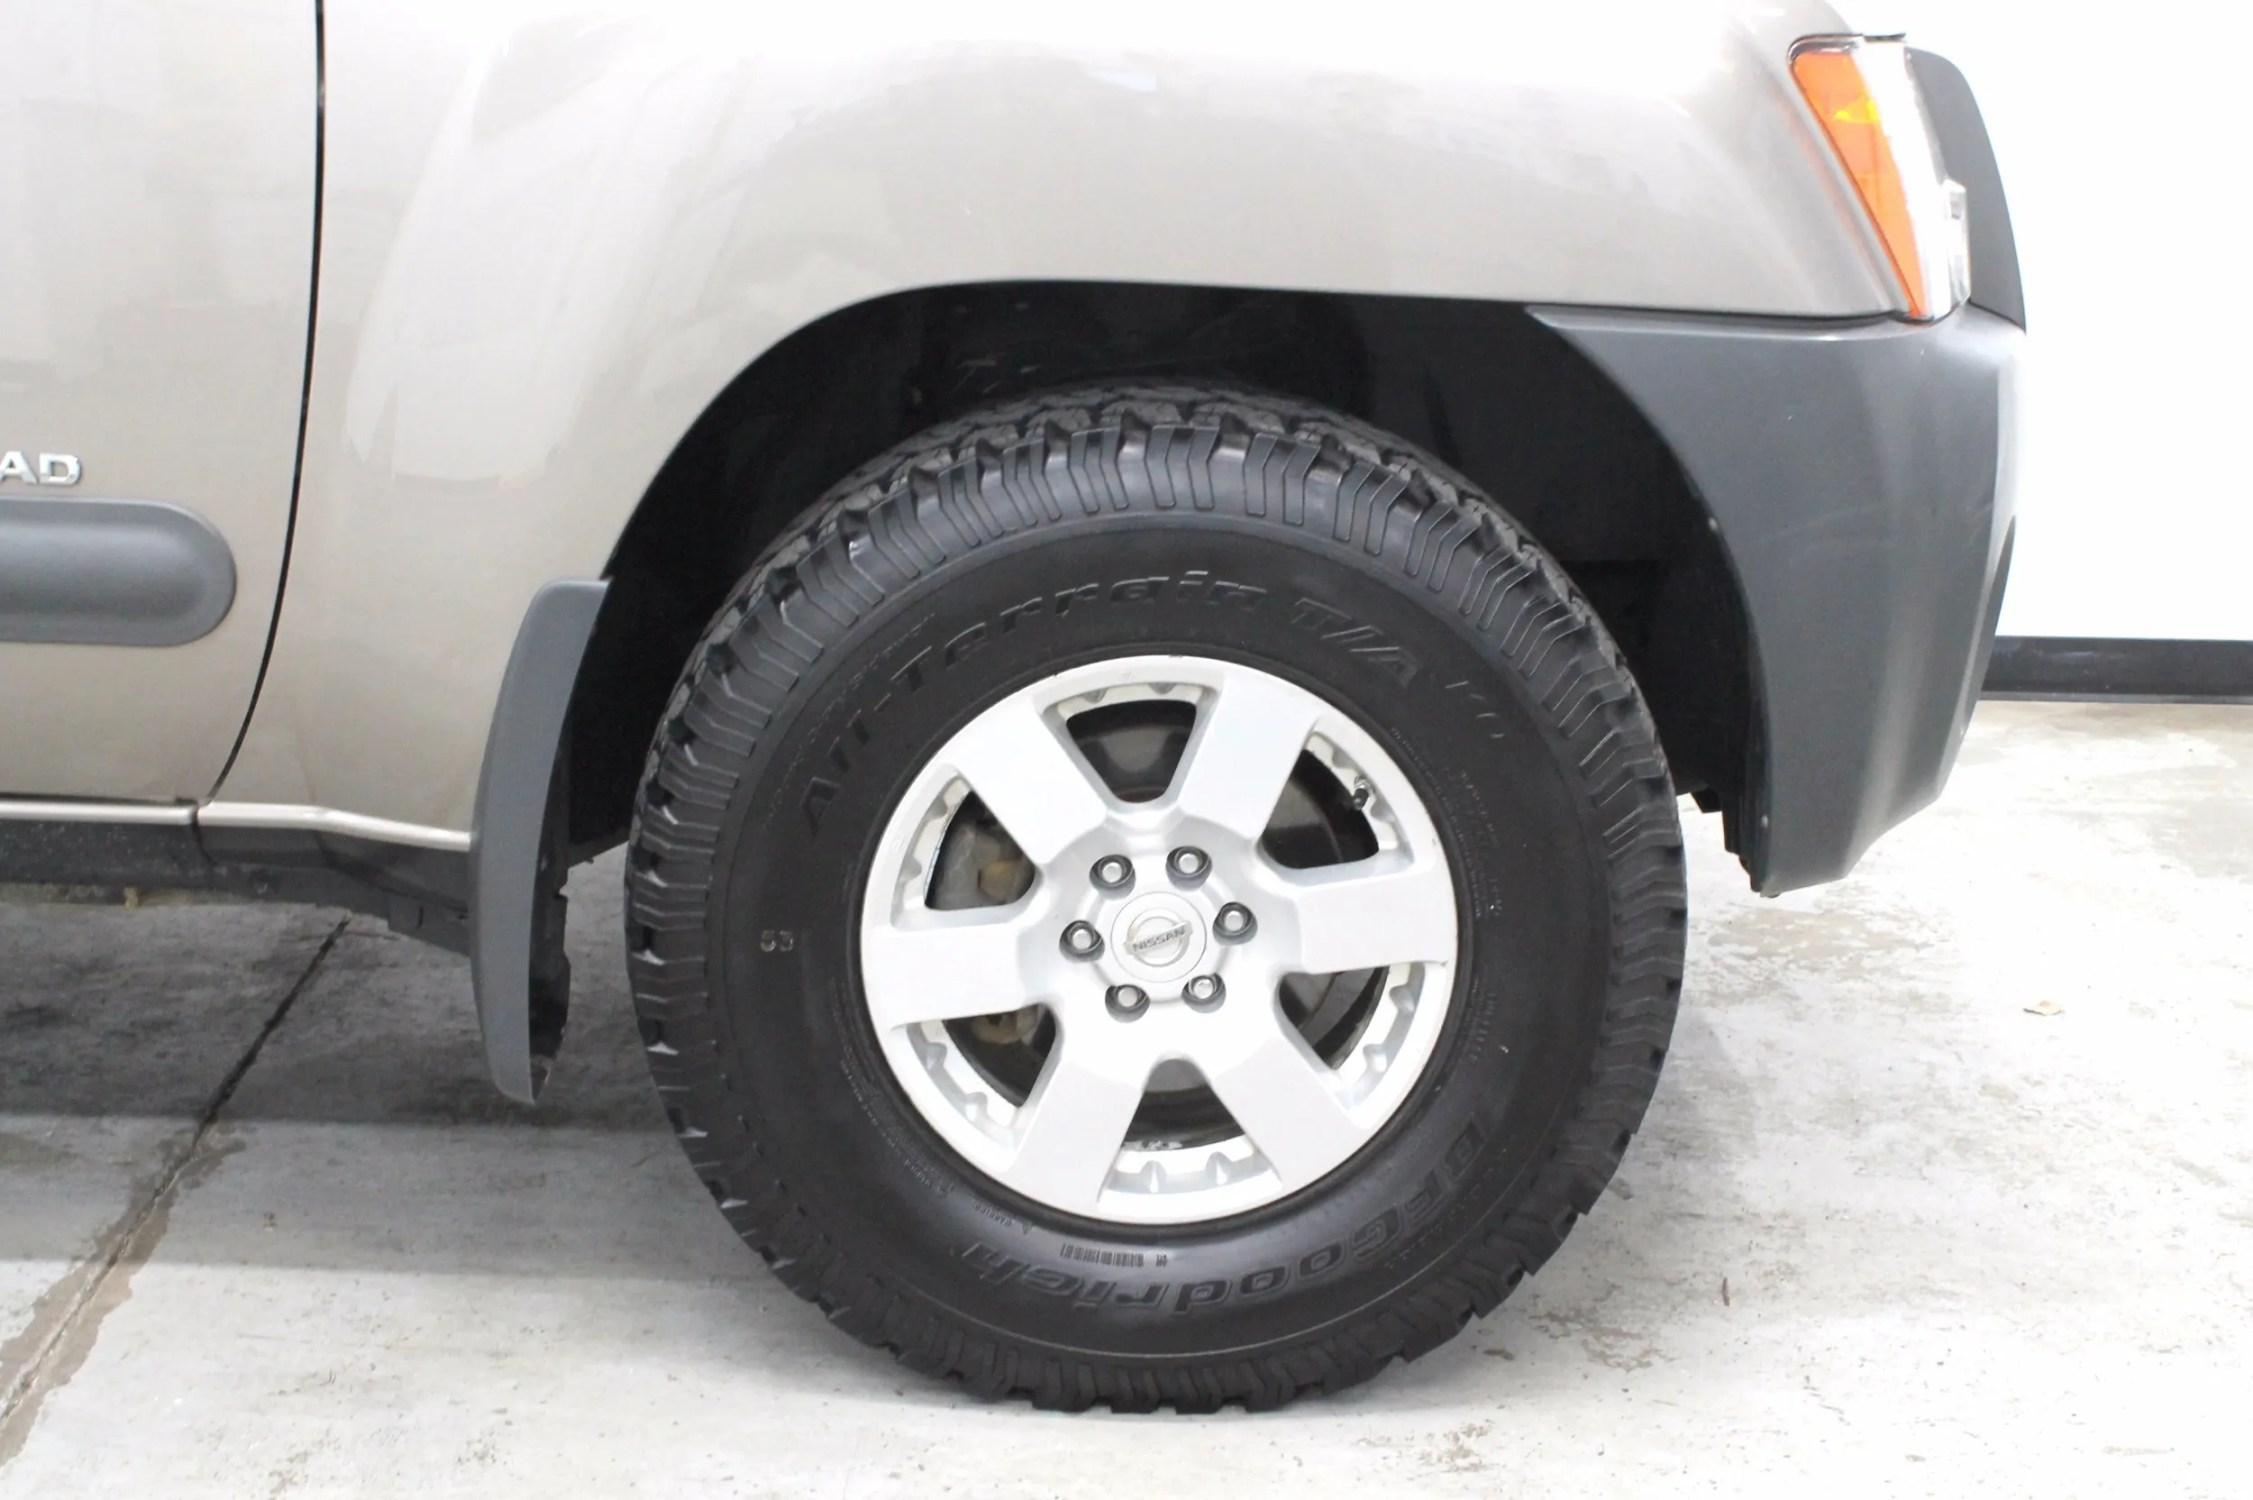 2008 nissan xterra off road one owner manual transmission sold view 20 hi res photos [ 2254 x 1500 Pixel ]